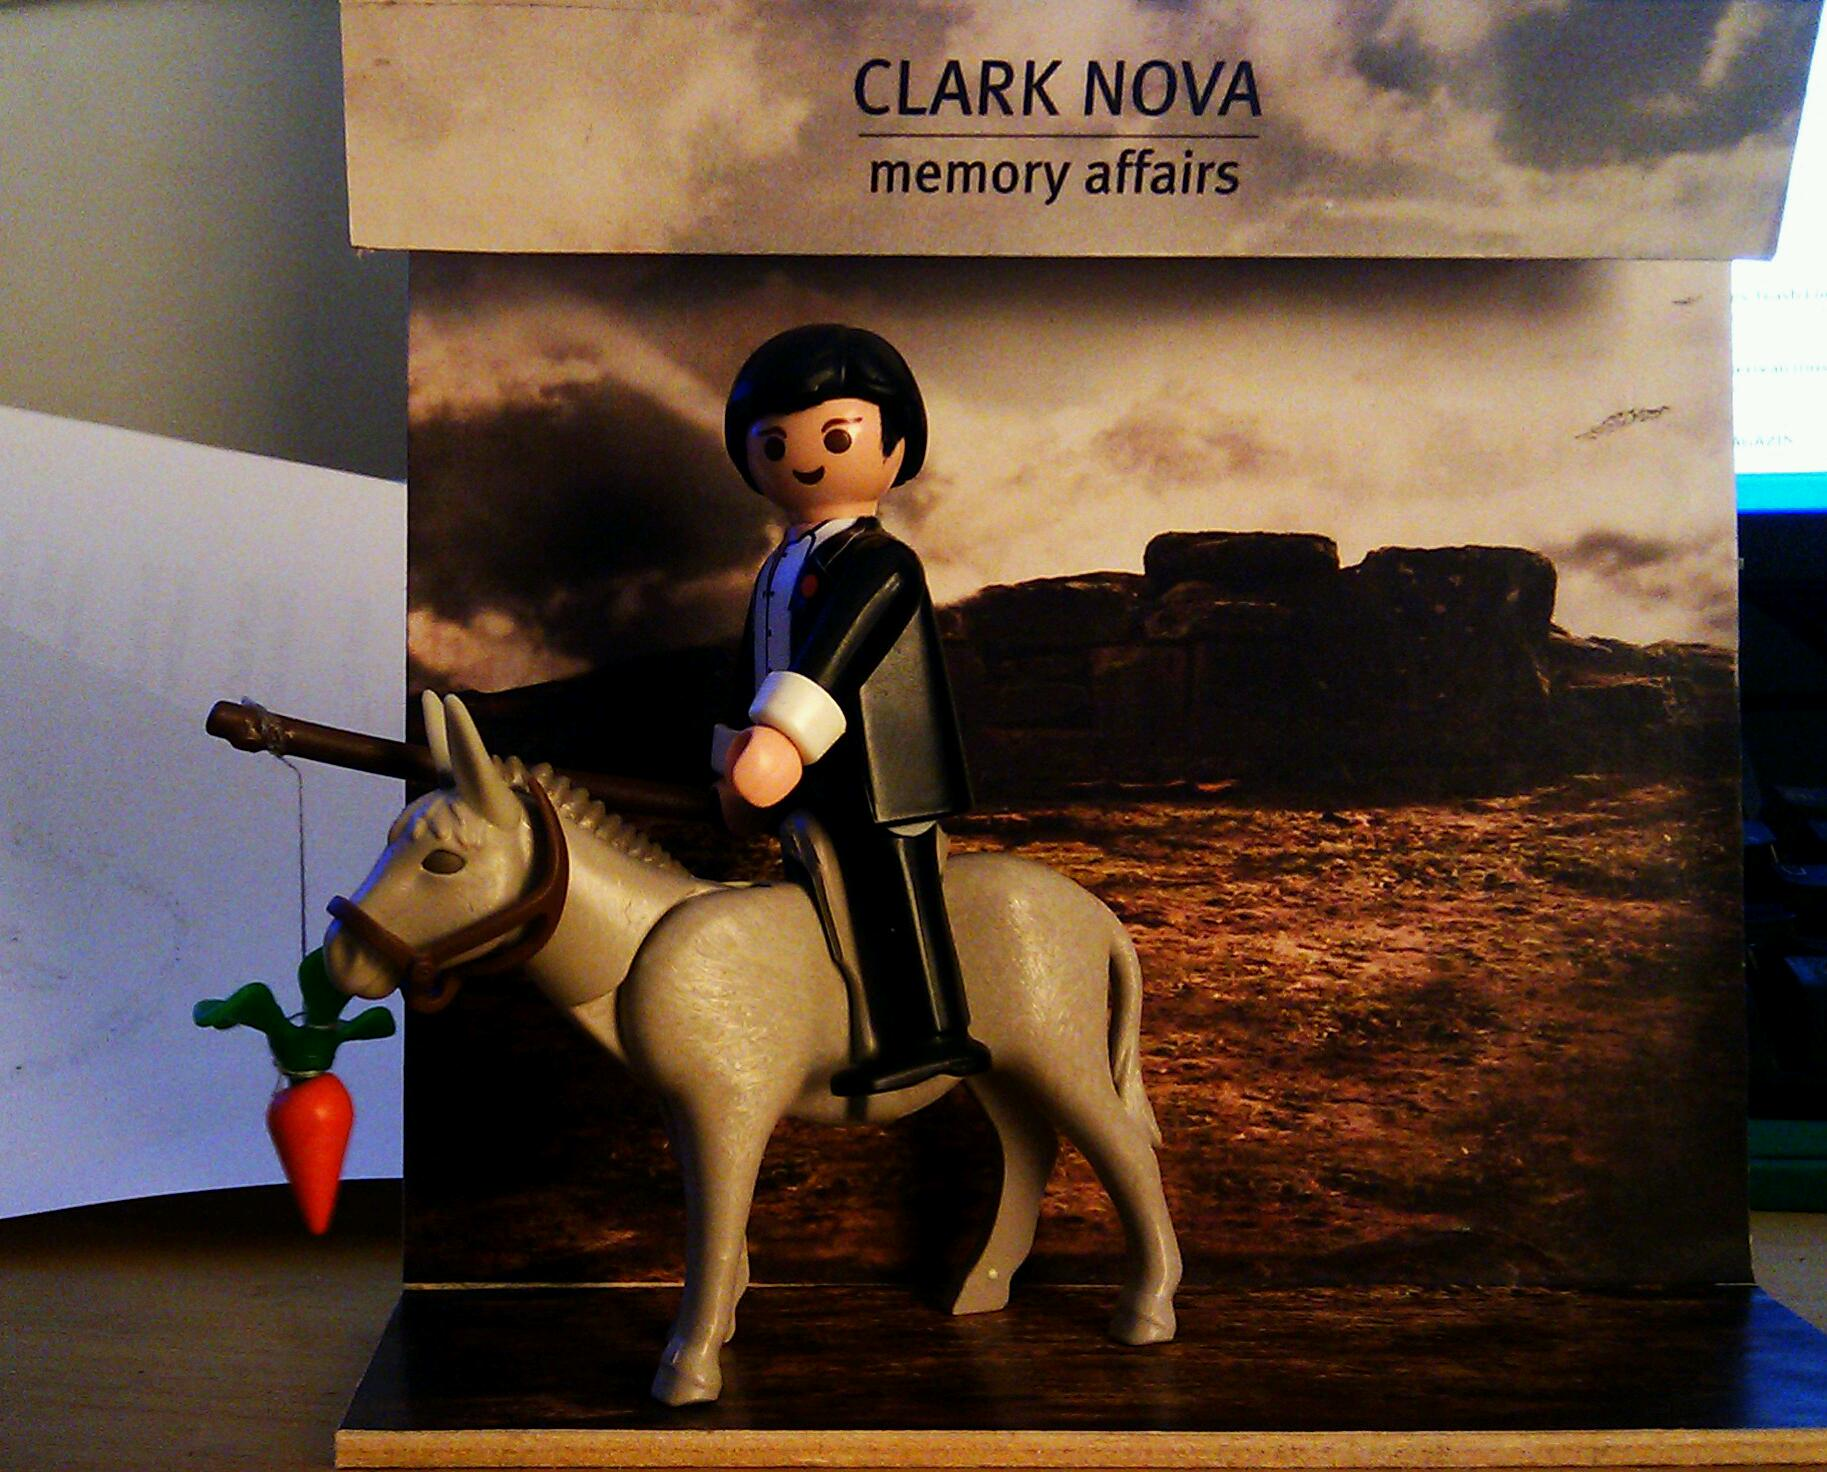 Clark Nova Memory Affairs - Playmobil Donkey and Clark